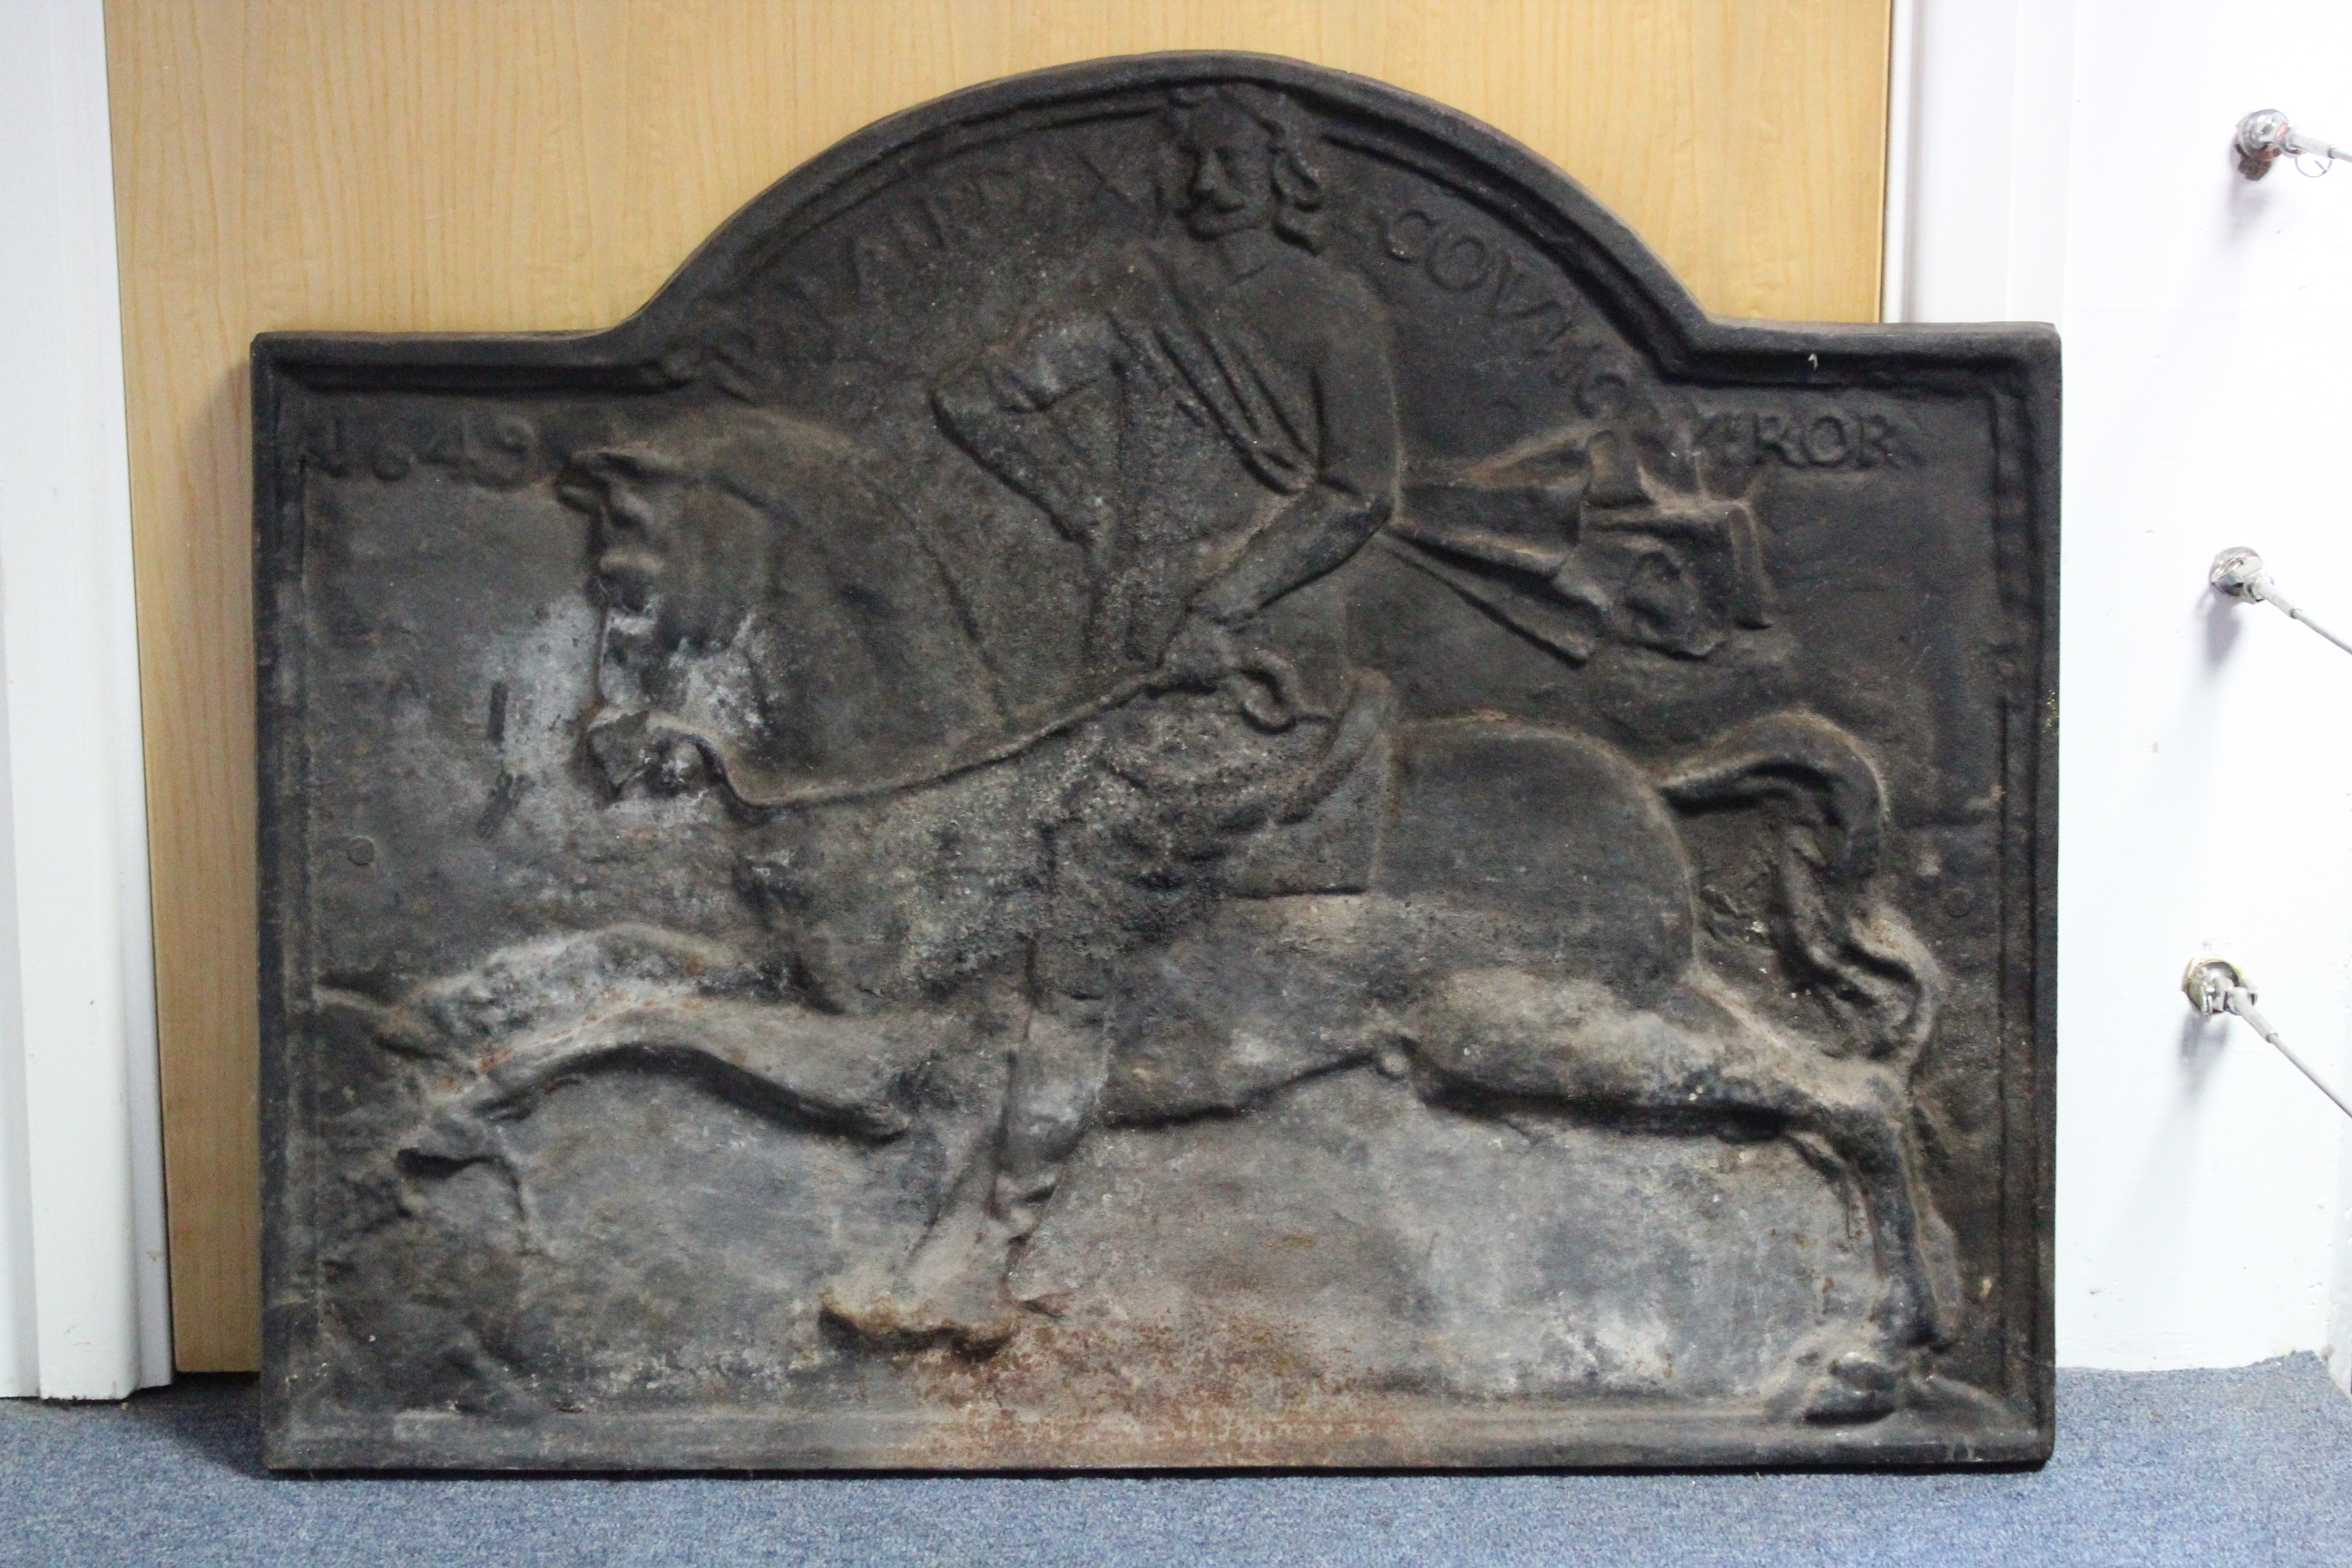 Lot 155 - A 17th century-style cast-iron fireback with shaped top & scene of a man on horseback, dated 1649;